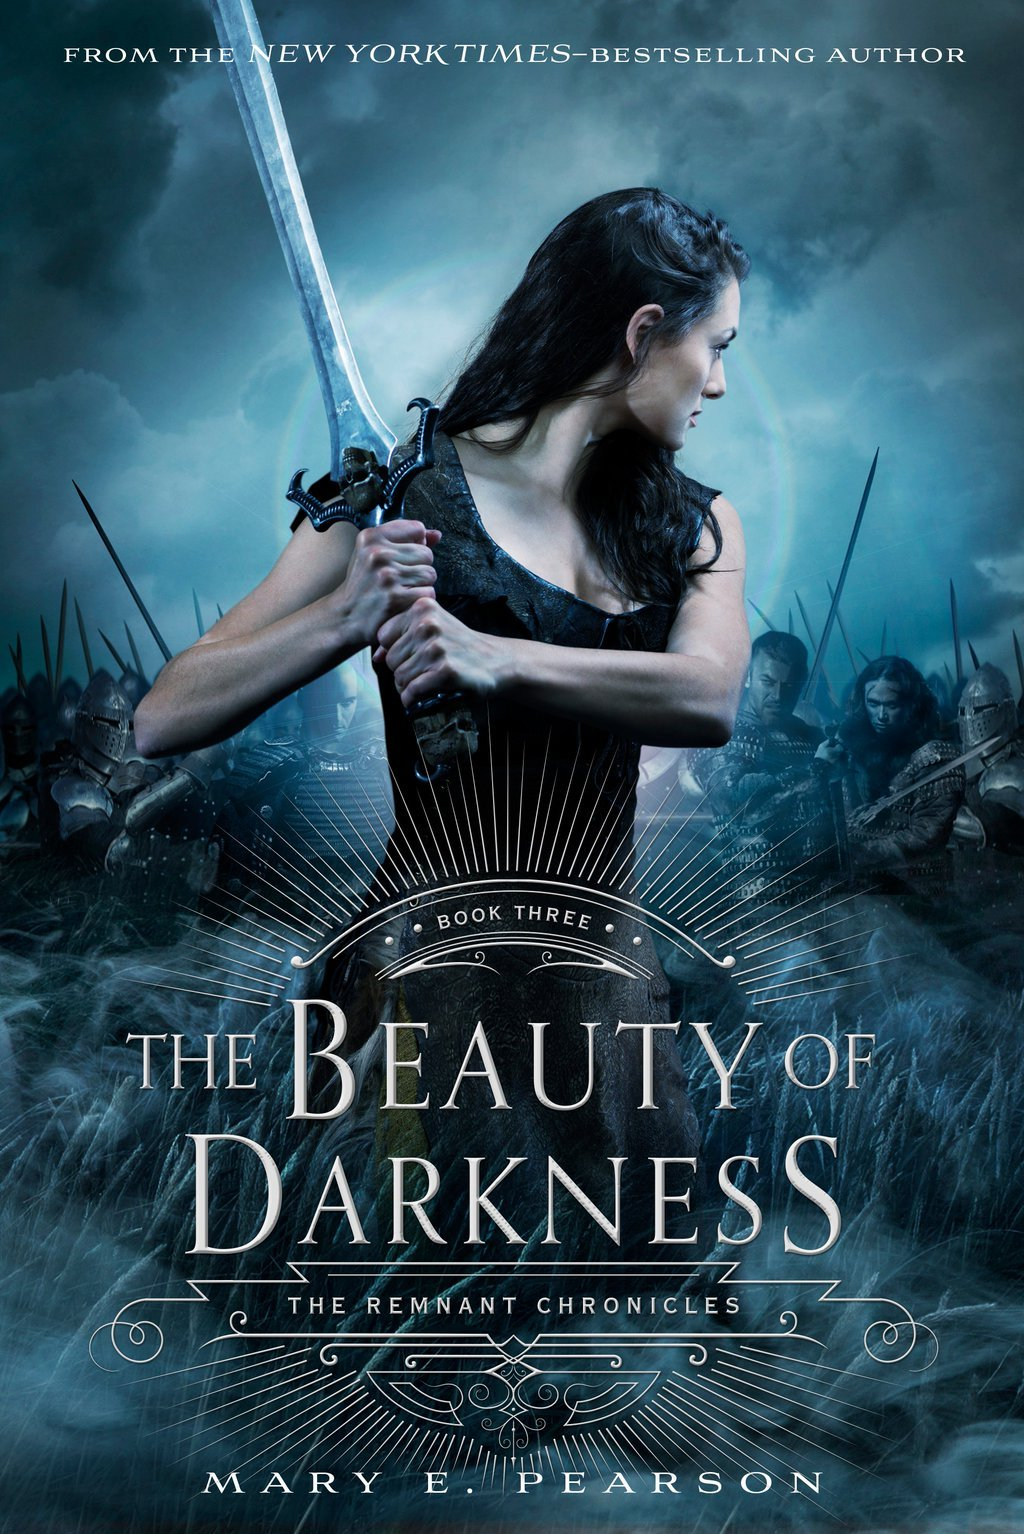 The Beauty of Darkness-Mary E Pearson